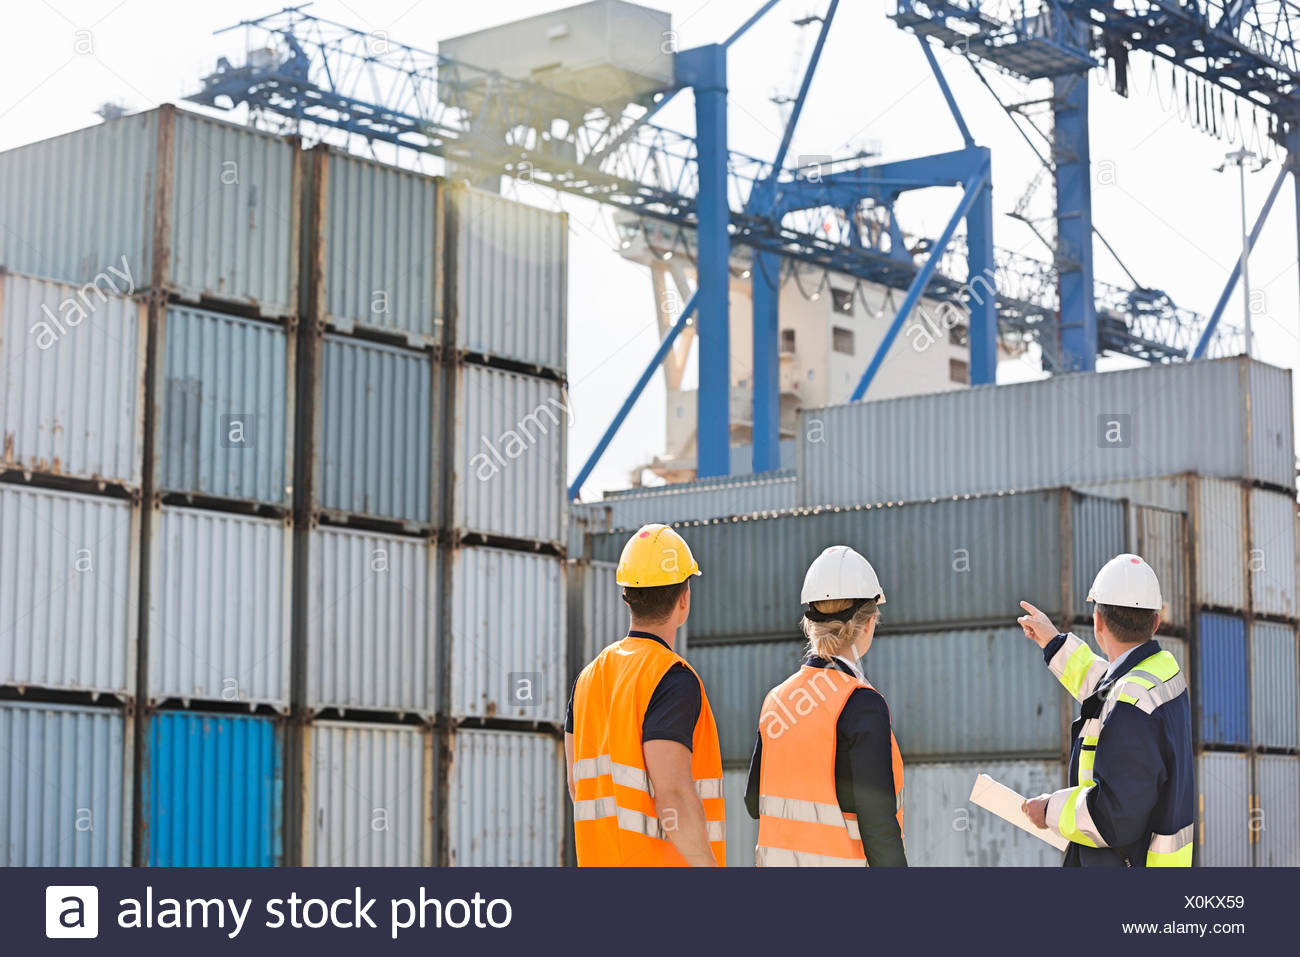 Rear view of workers inspecting cargo containers in shipping yard - Stock Image